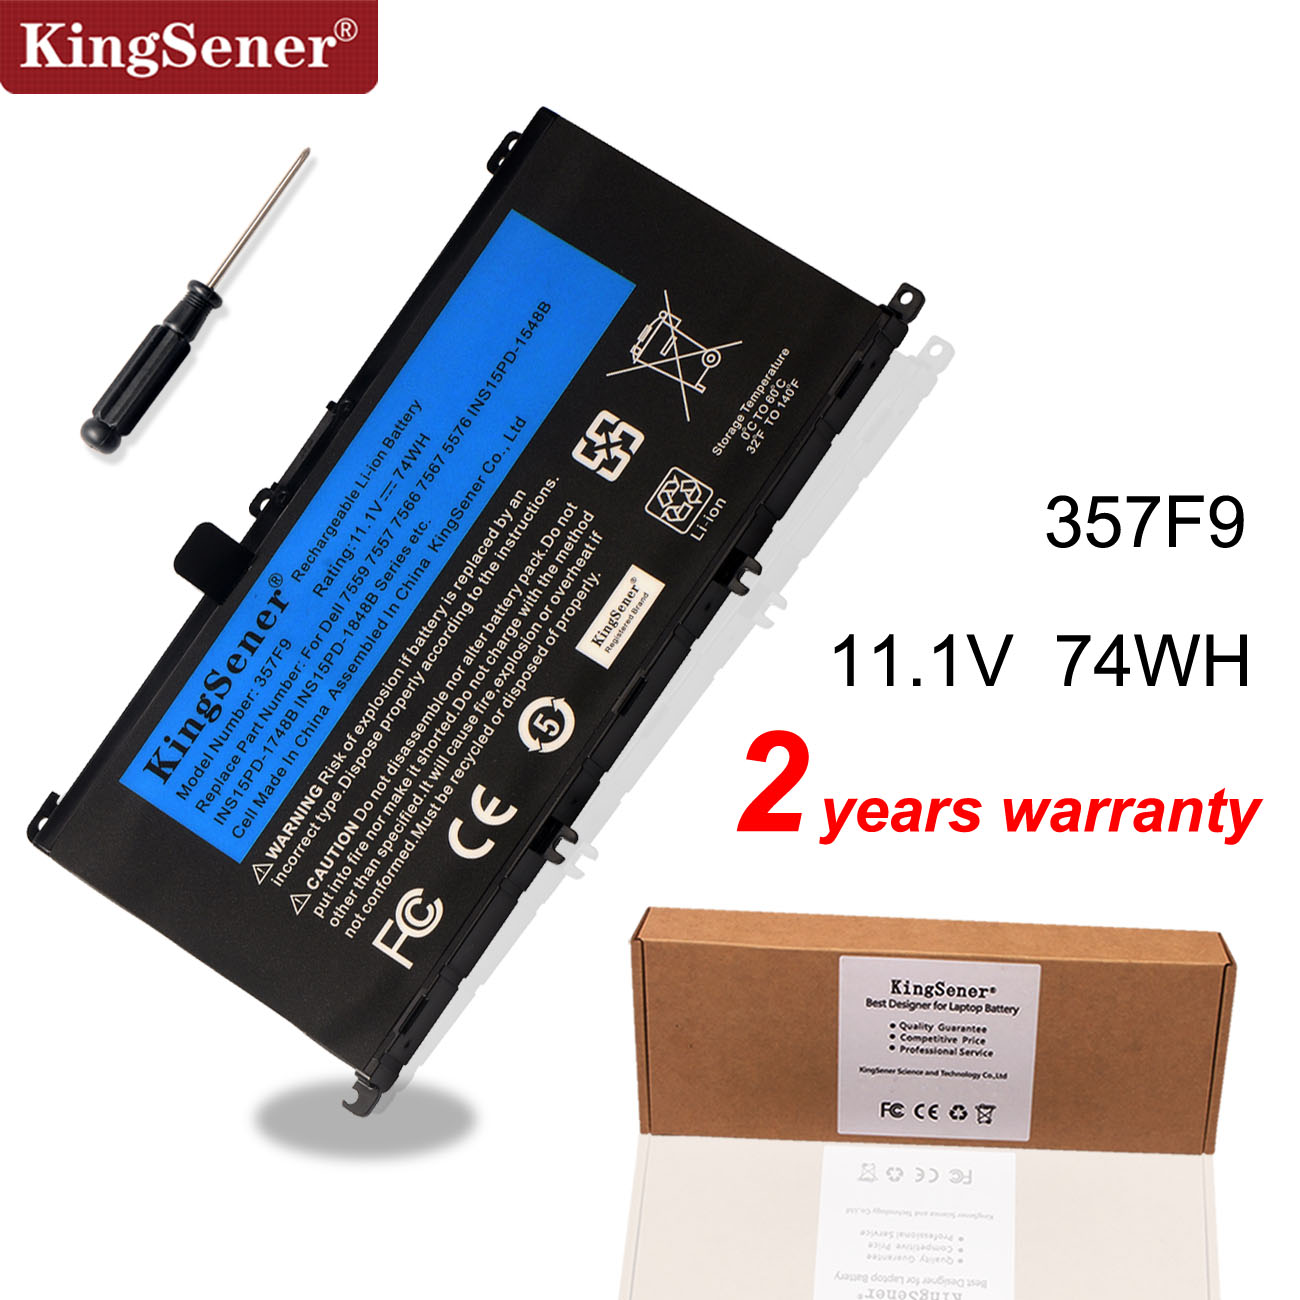 KingSener 11.1V 74WH 357F9 Battery For Dell Inspiron 15- 7000 7559 7557 7566 7567 5576 INS15PD-1548B INS15PD-1748B INS15PD-1848B